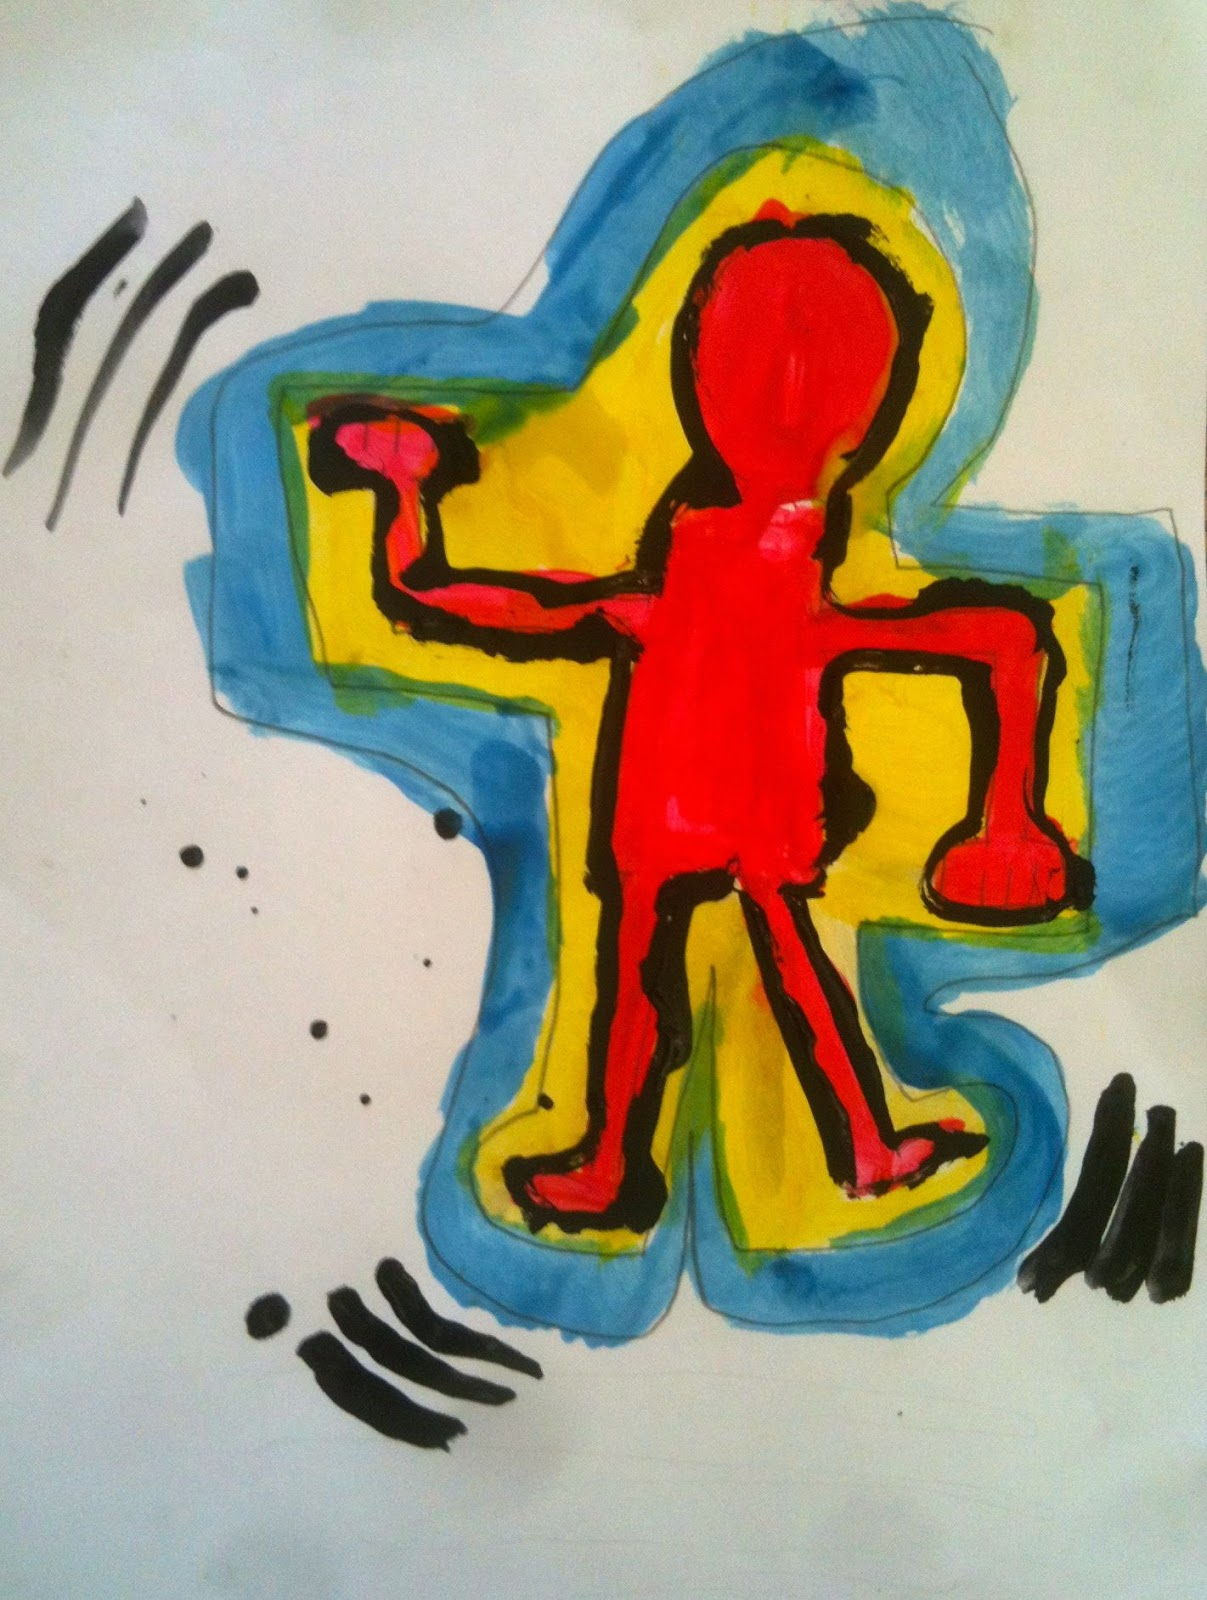 kids art market  organic shape and geometric shape movement figures with keith haring